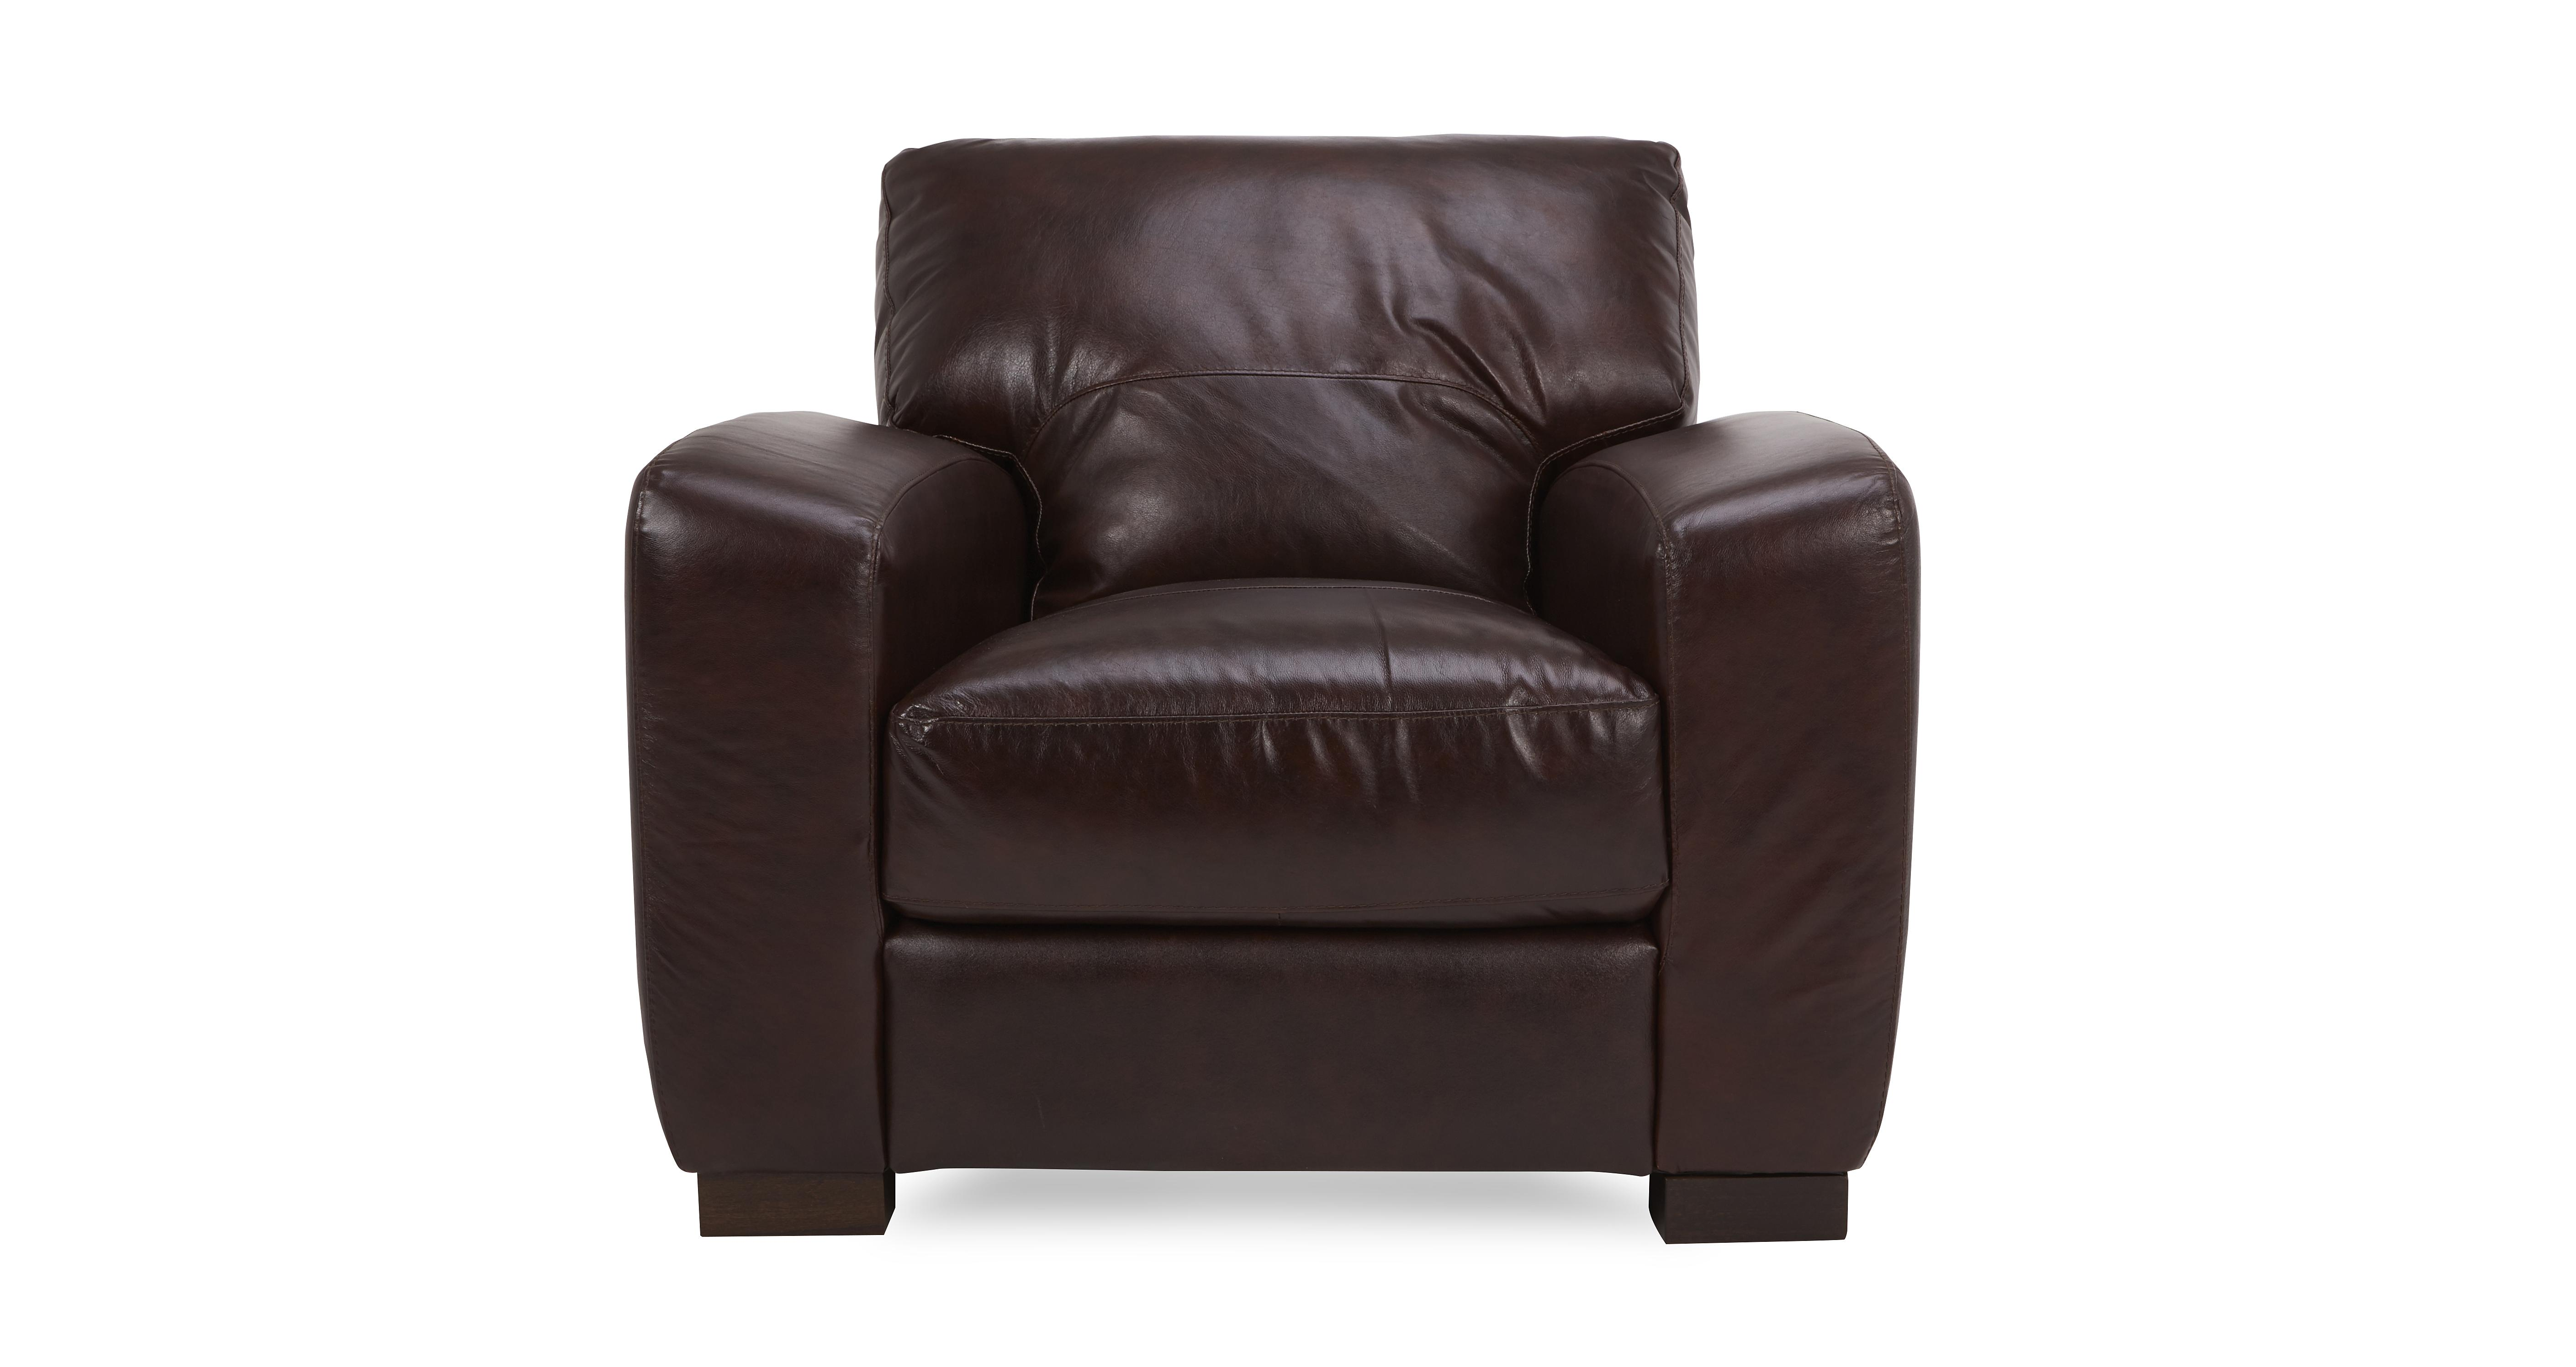 Leather Chairs In Modern & Classic Designs